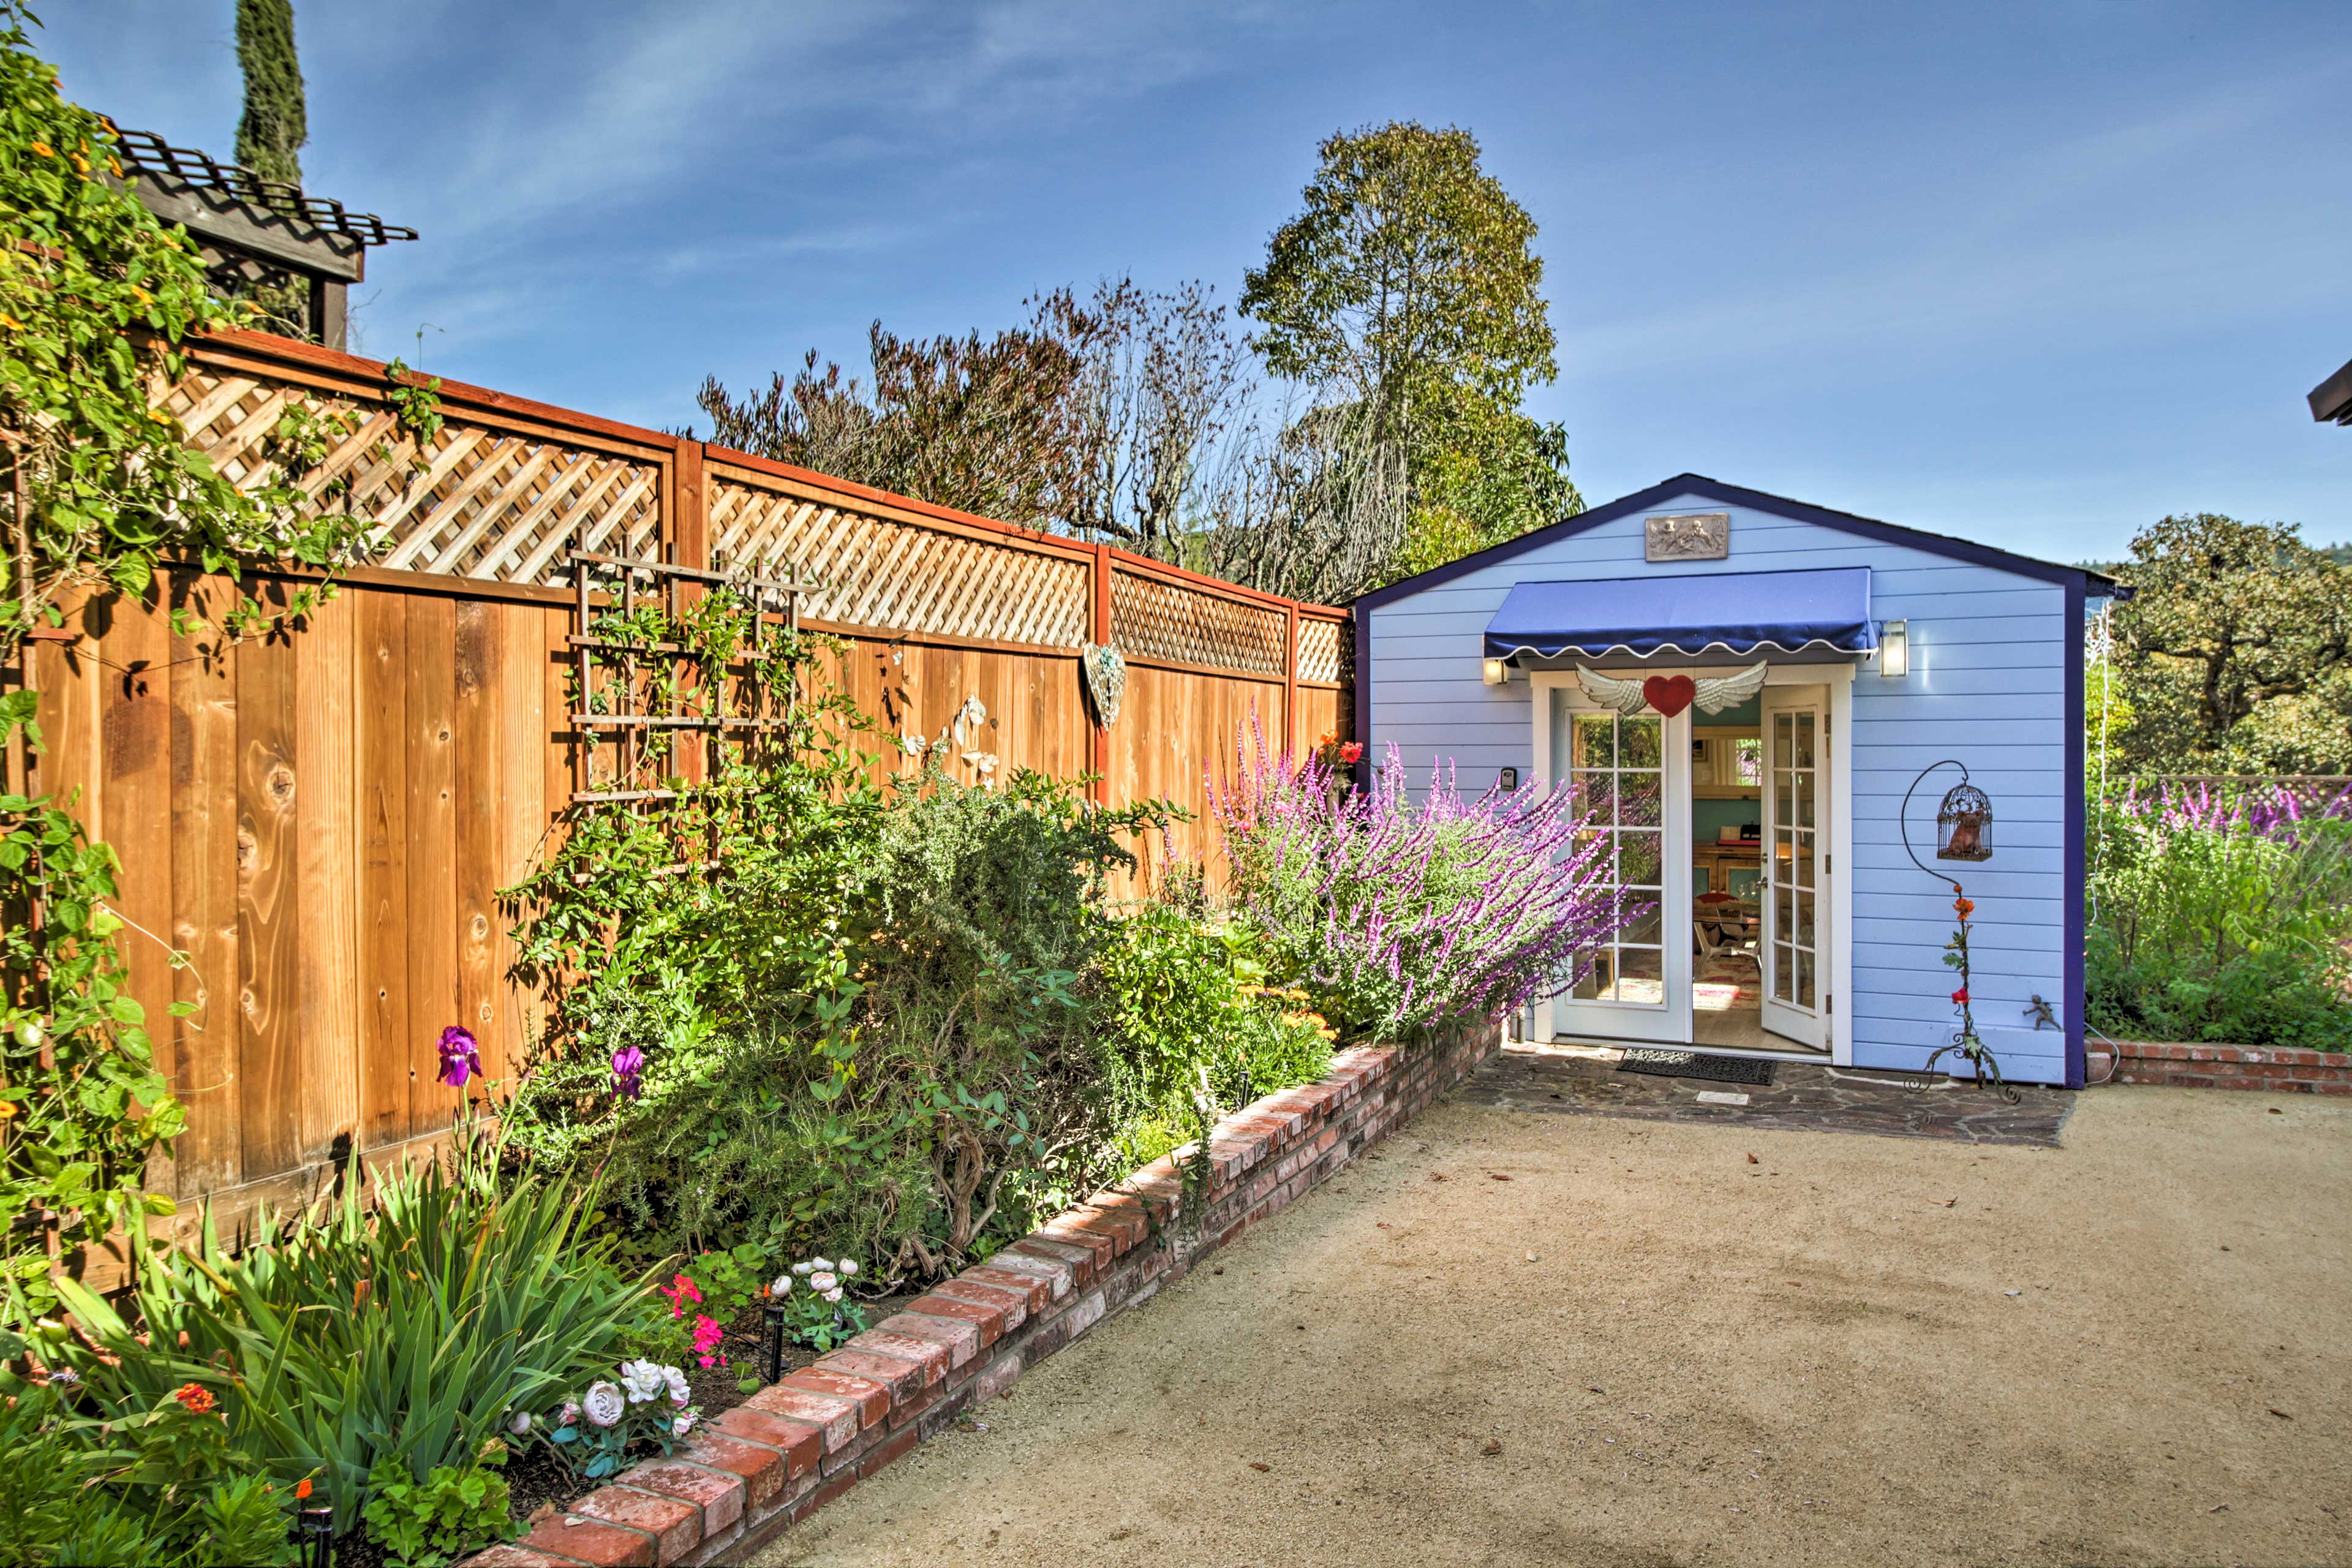 Your home is situated just 3 miles from all of Sonoma's restaurants and shops!